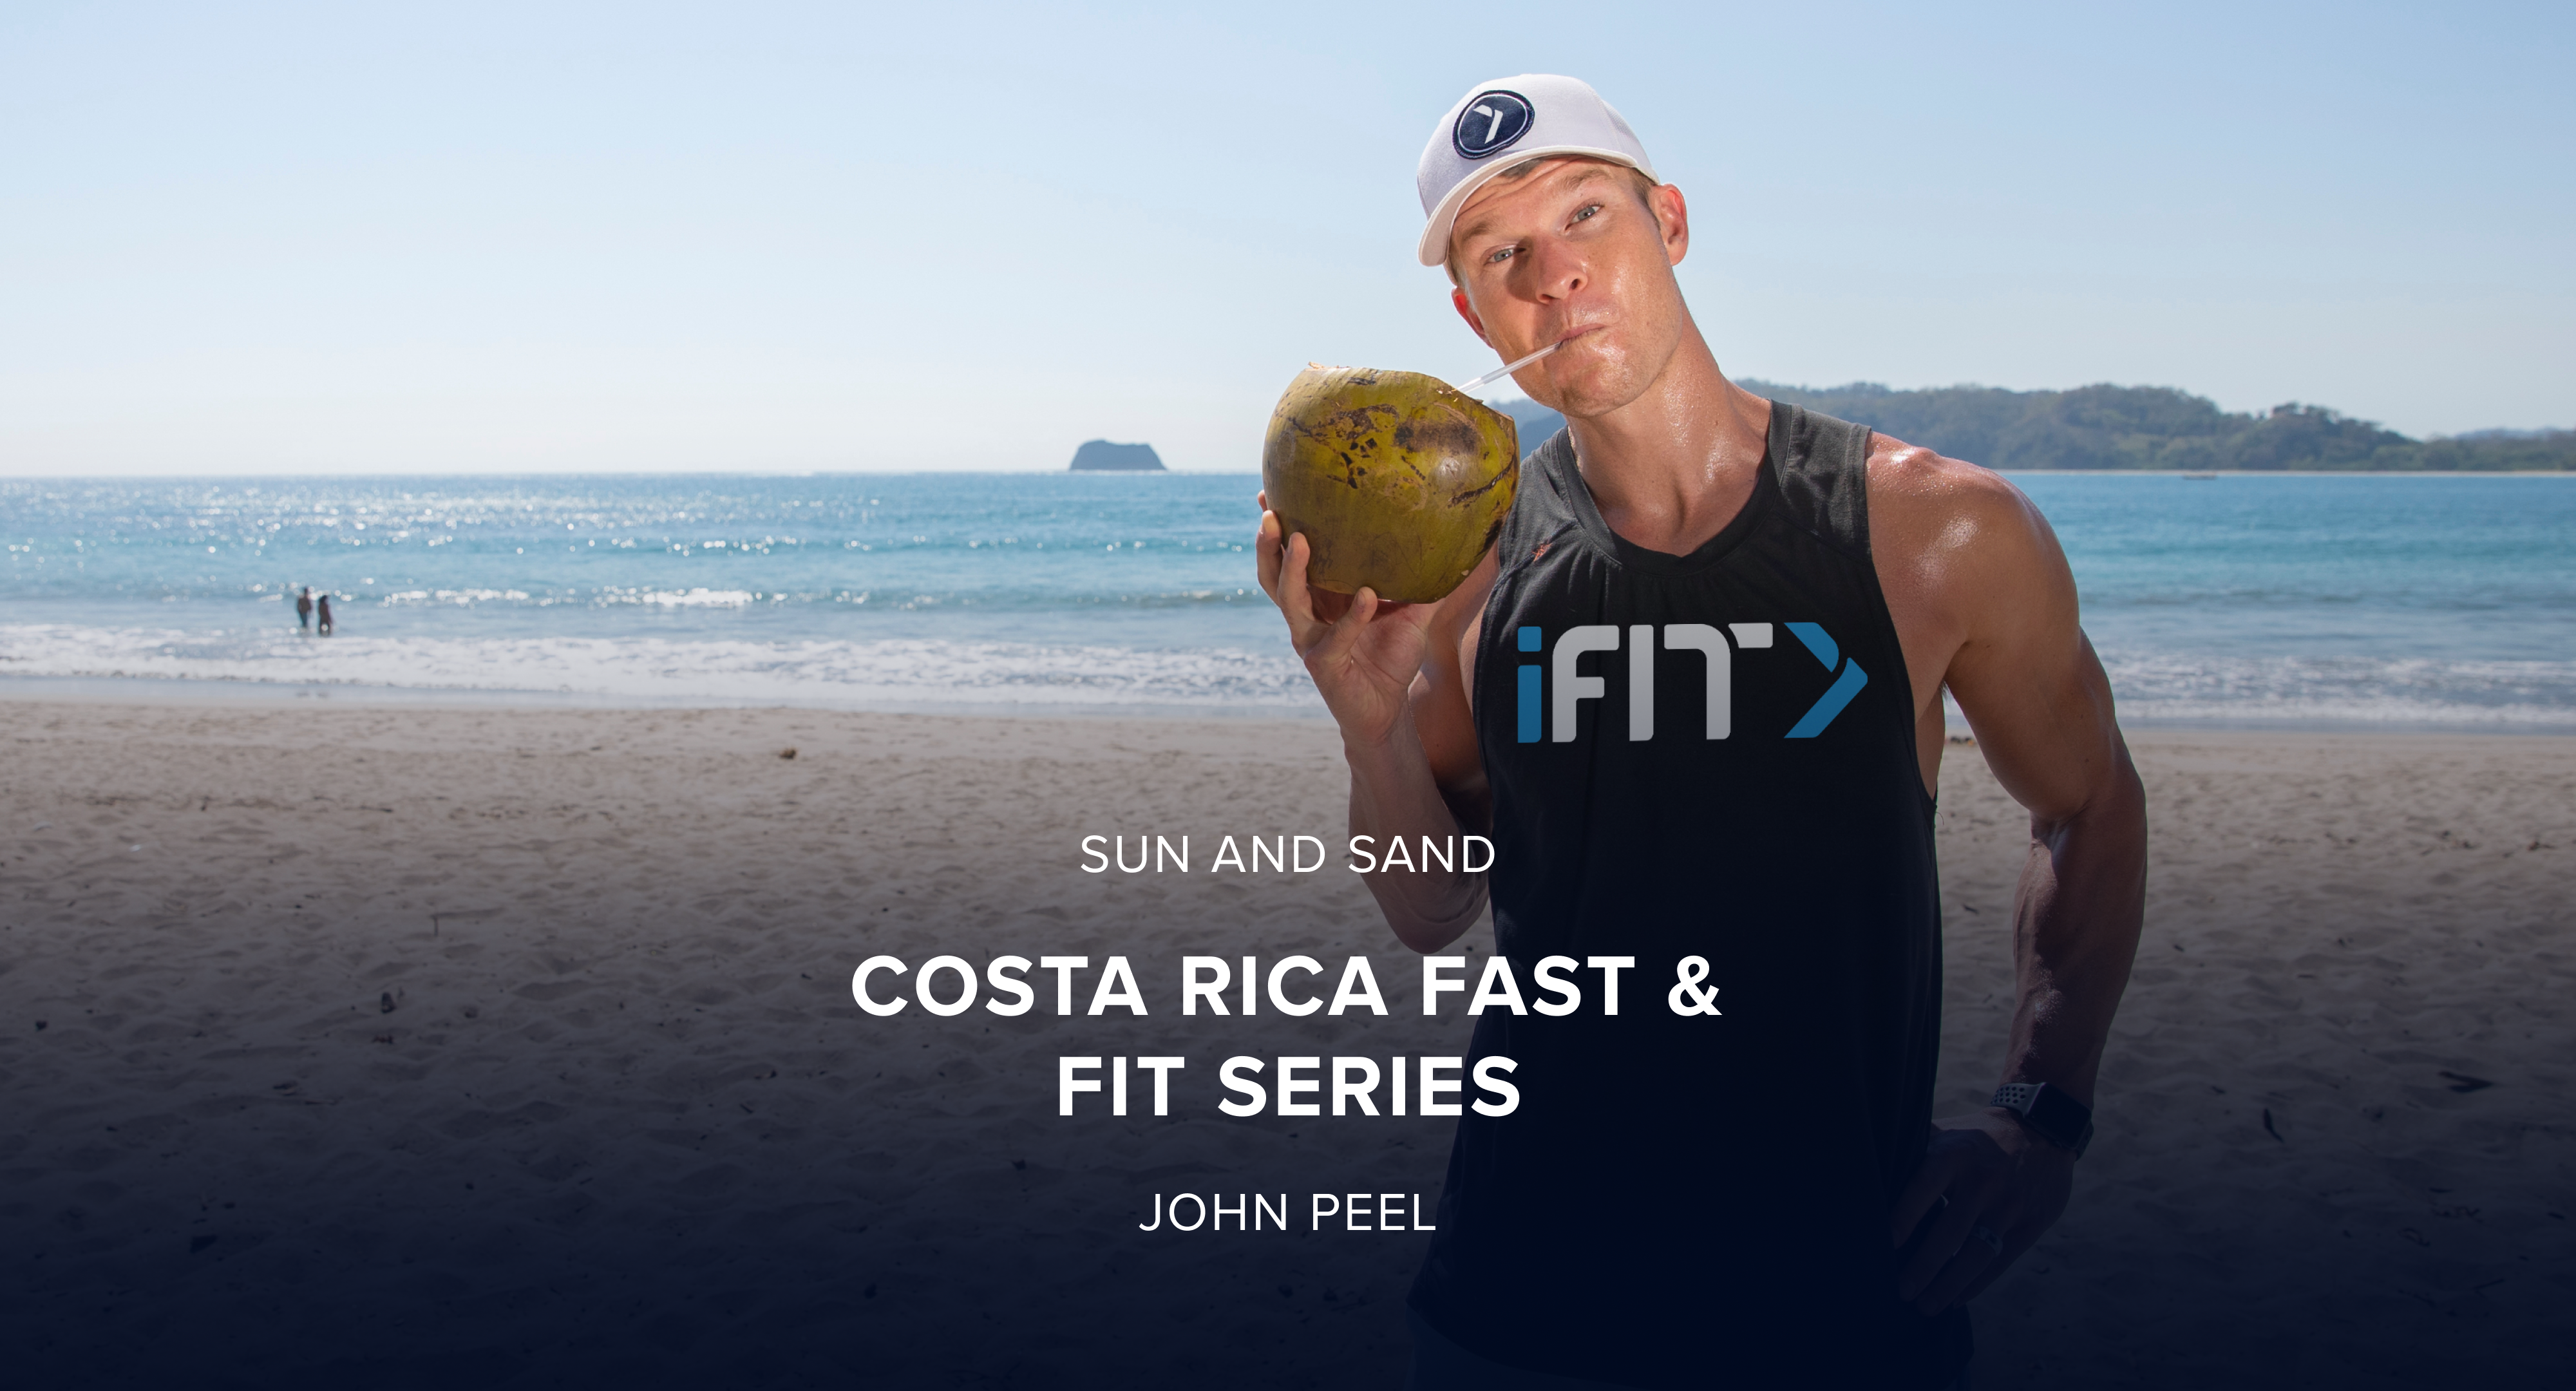 iFit March Sun and Sand Treadmill and Elliptical Challenge: Costa Rica Fast and Fit Workout Series with Trainer John Peel